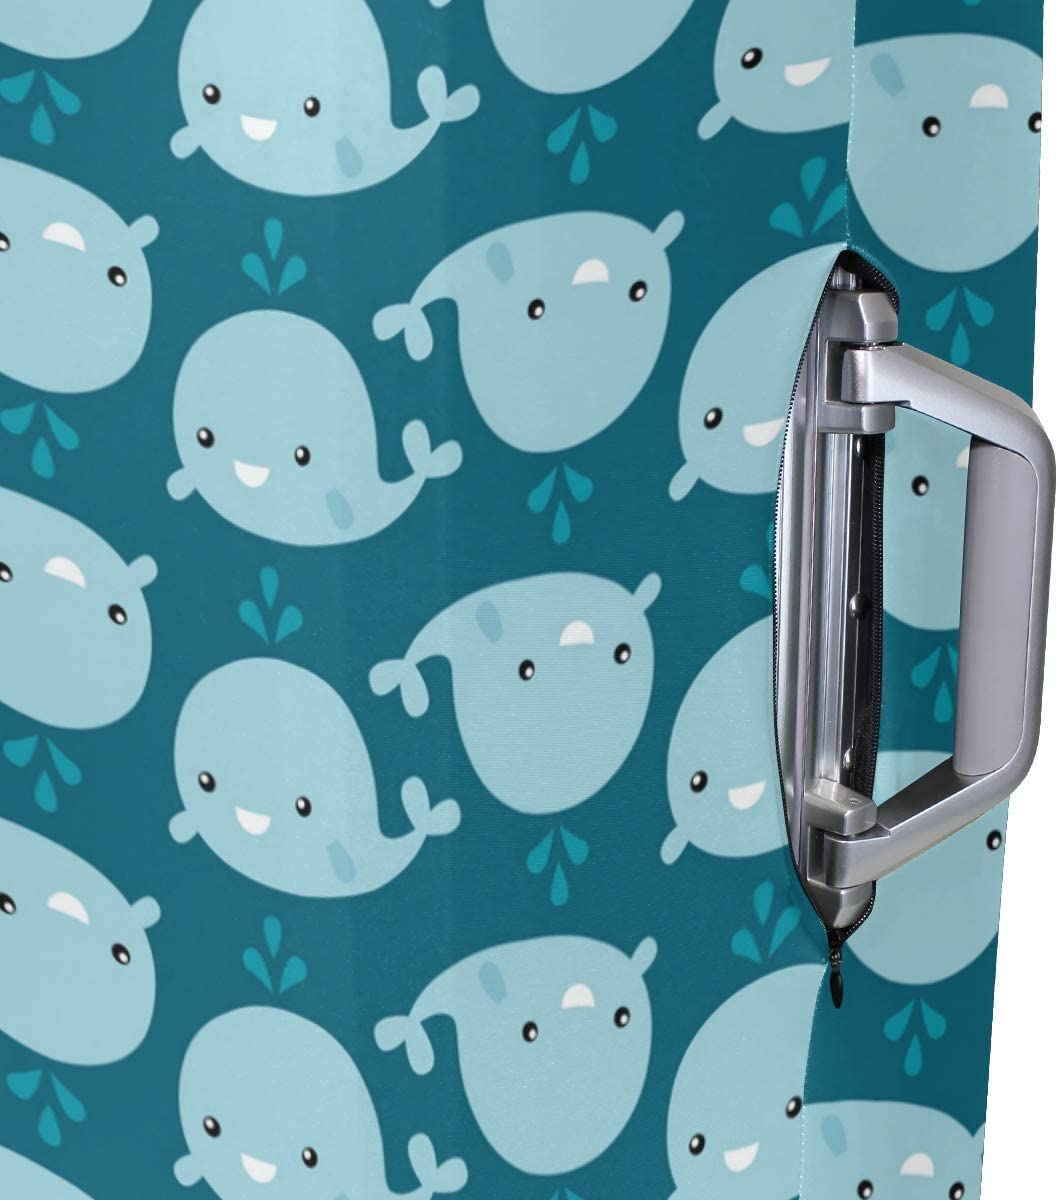 Blue Viper Cute Whales Luggage Protective Cover Suitcase Protector Fits 22-24 Inch Luggage